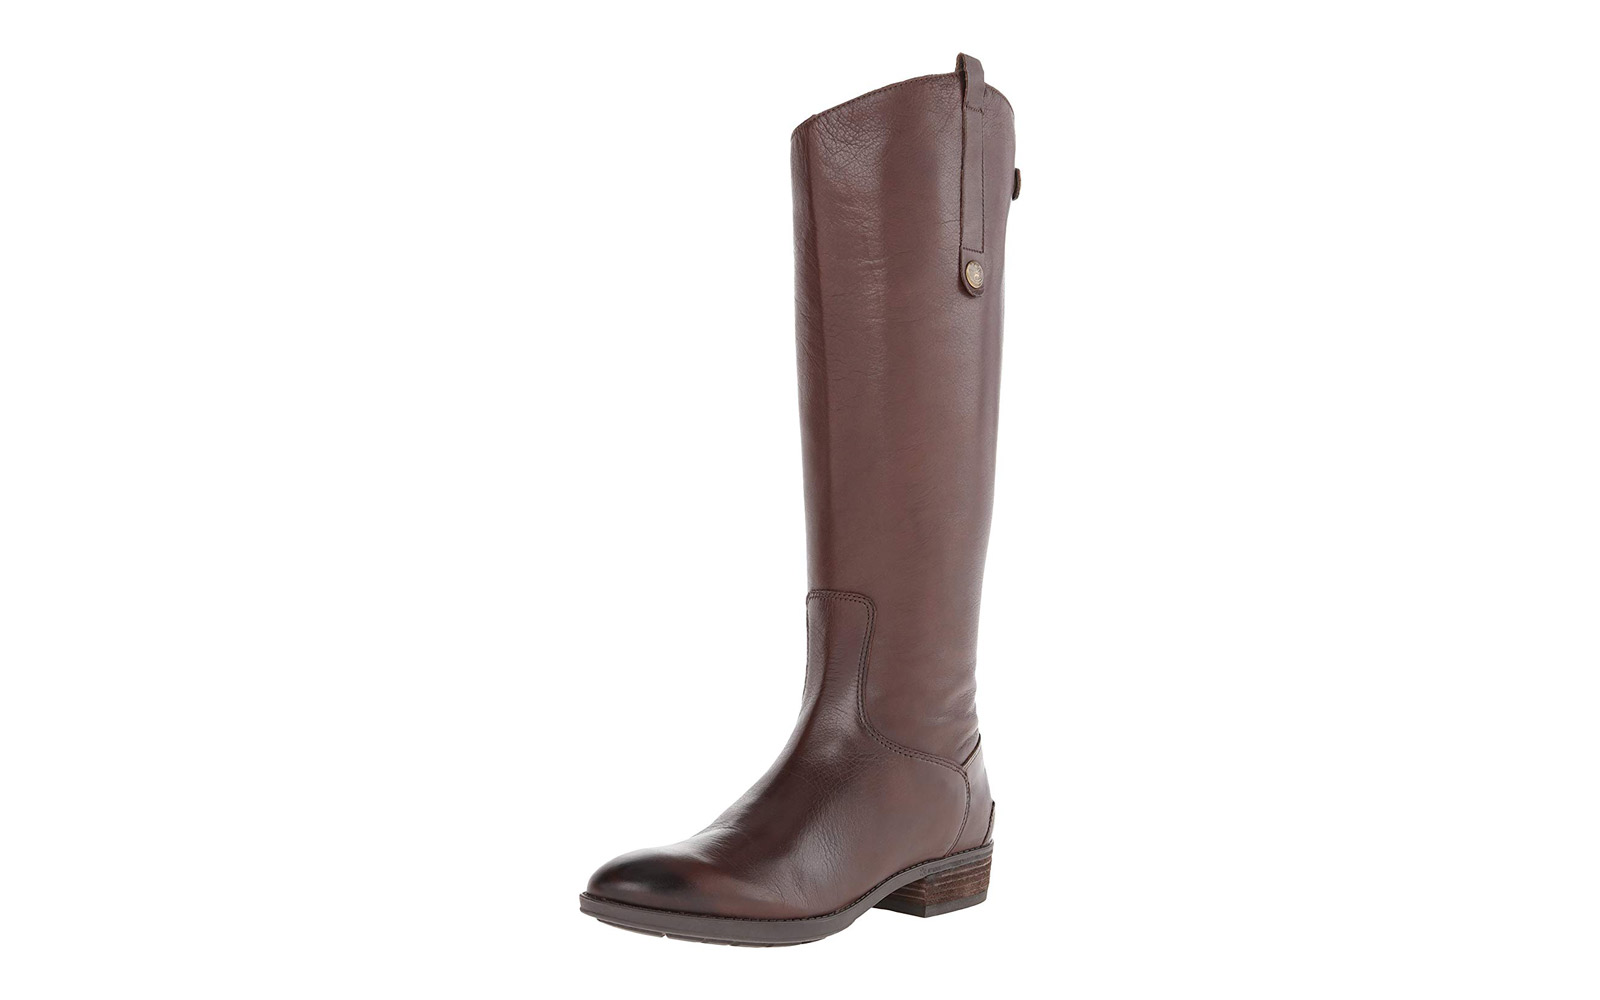 comfy riding boot